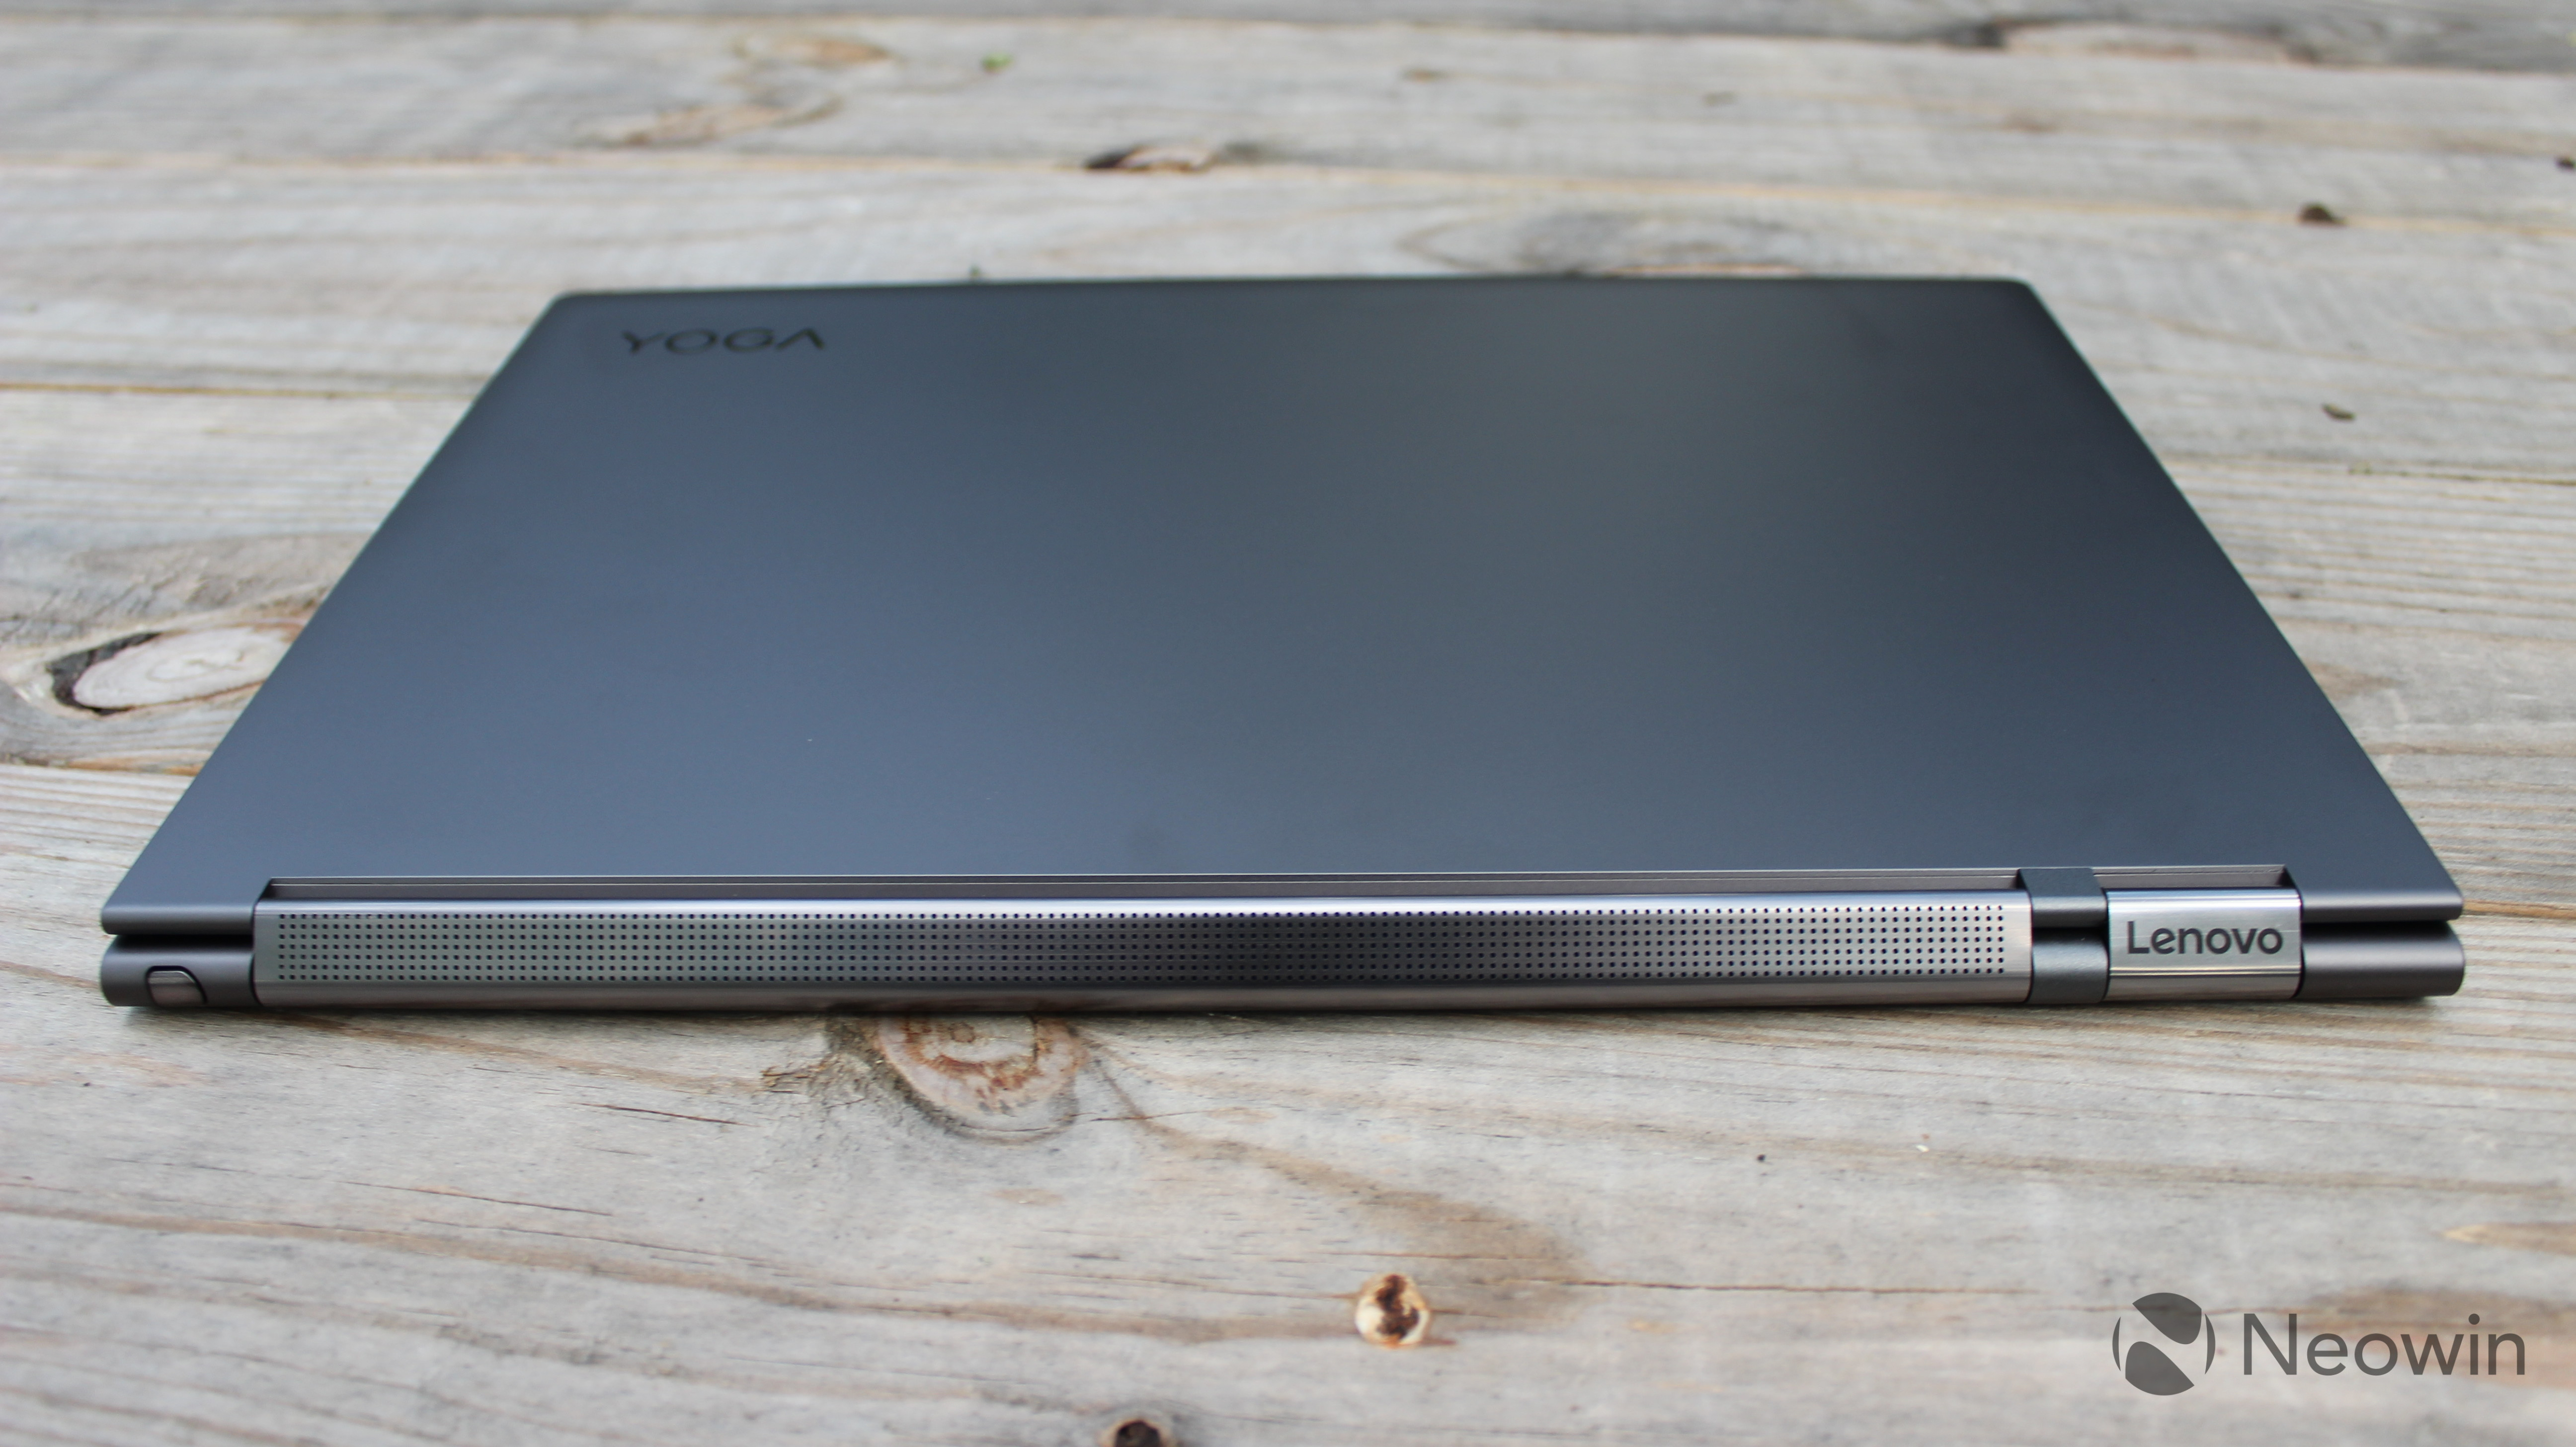 Lenovo Yoga C930 Review The Audio Quality Is Bonkers Neowin